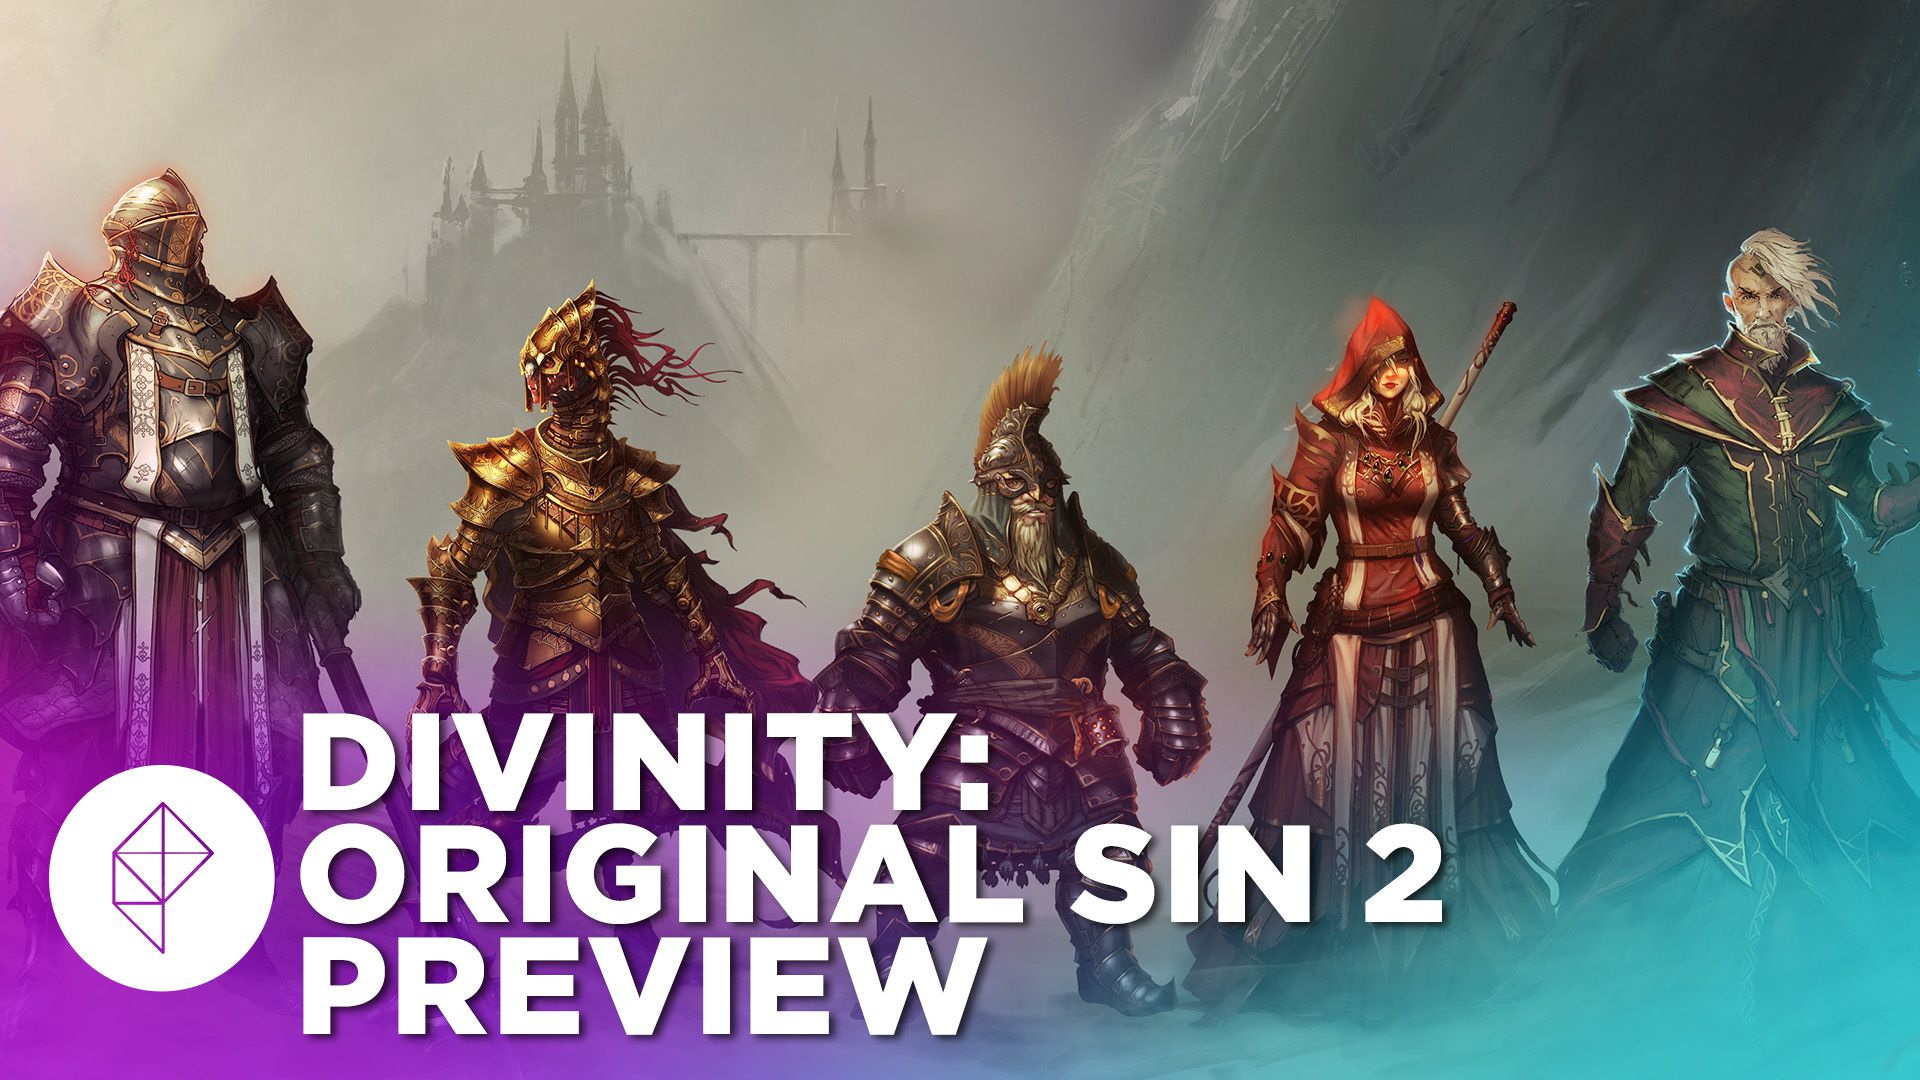 Divinity: Original Sin 2 is a co-op RPG built for trolling your